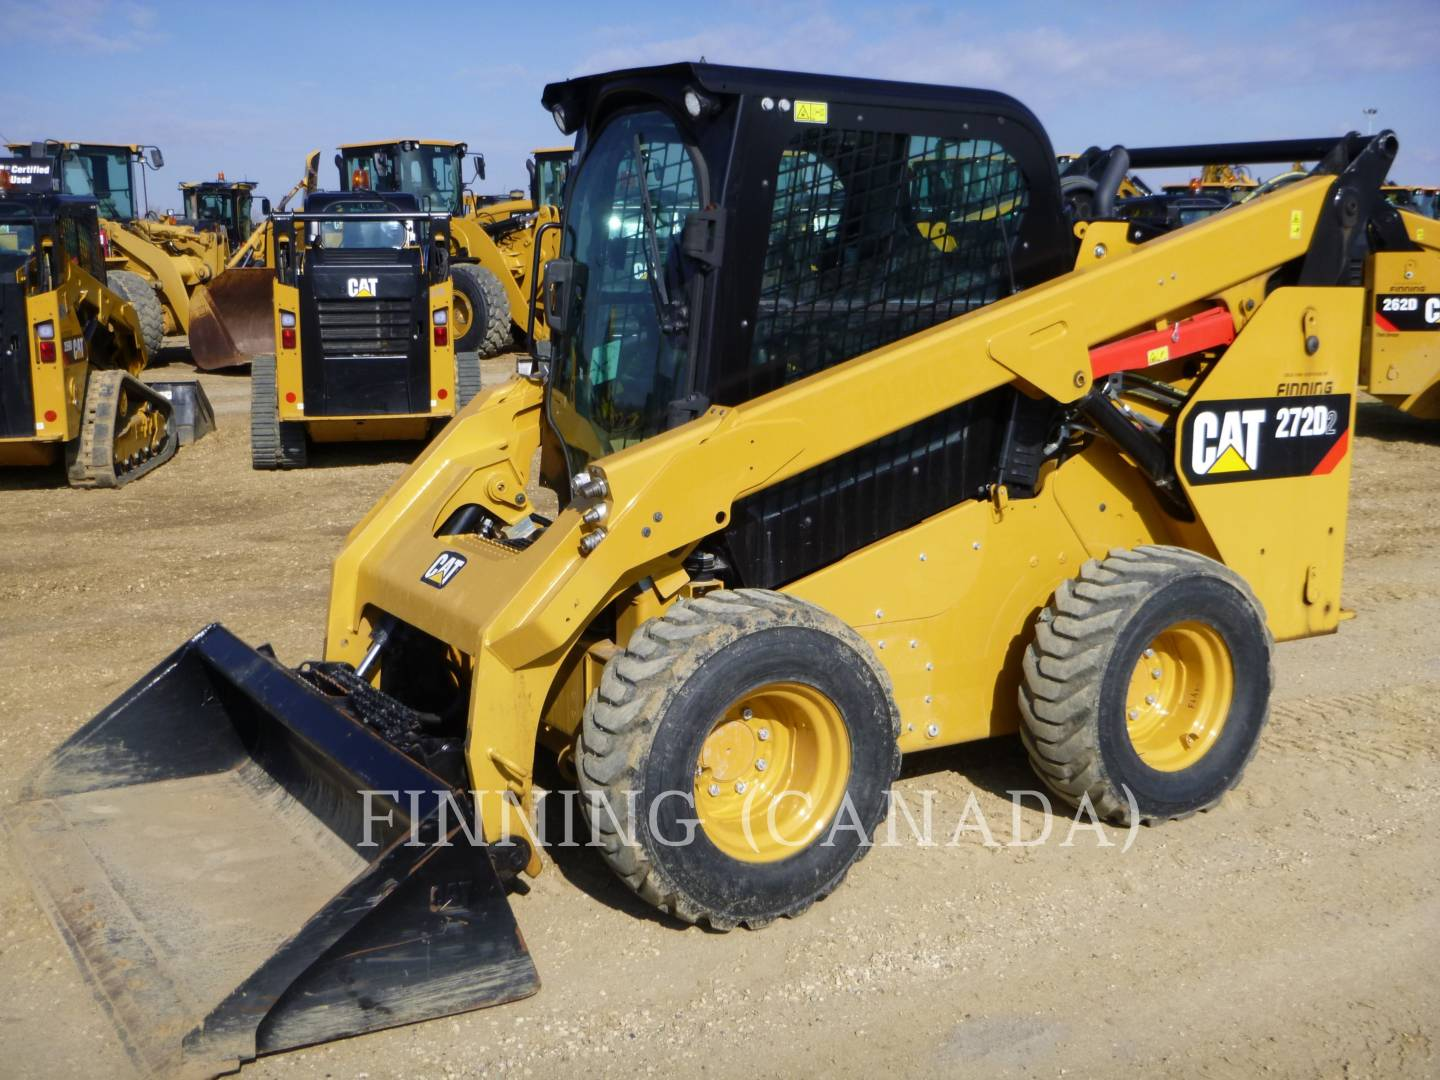 Used Skid Steer Loaders For Sale | Finning Cat